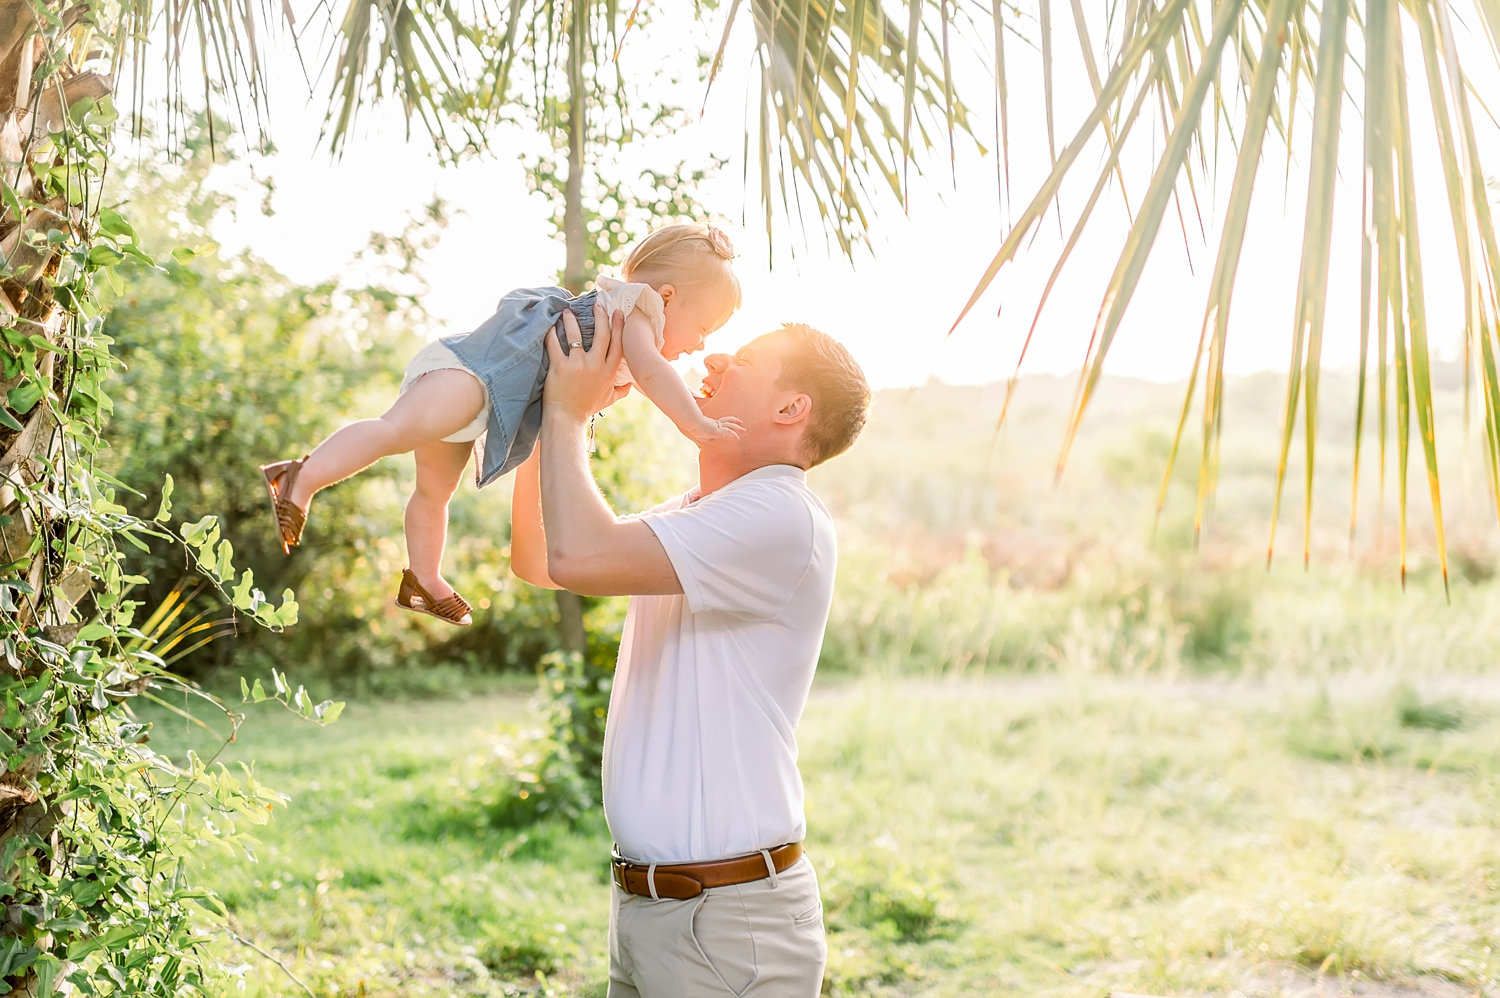 golden hour, setting sun in Florida, dad holding up baby daughter, Rya Duncklee Photography, Gainesville baby photographer